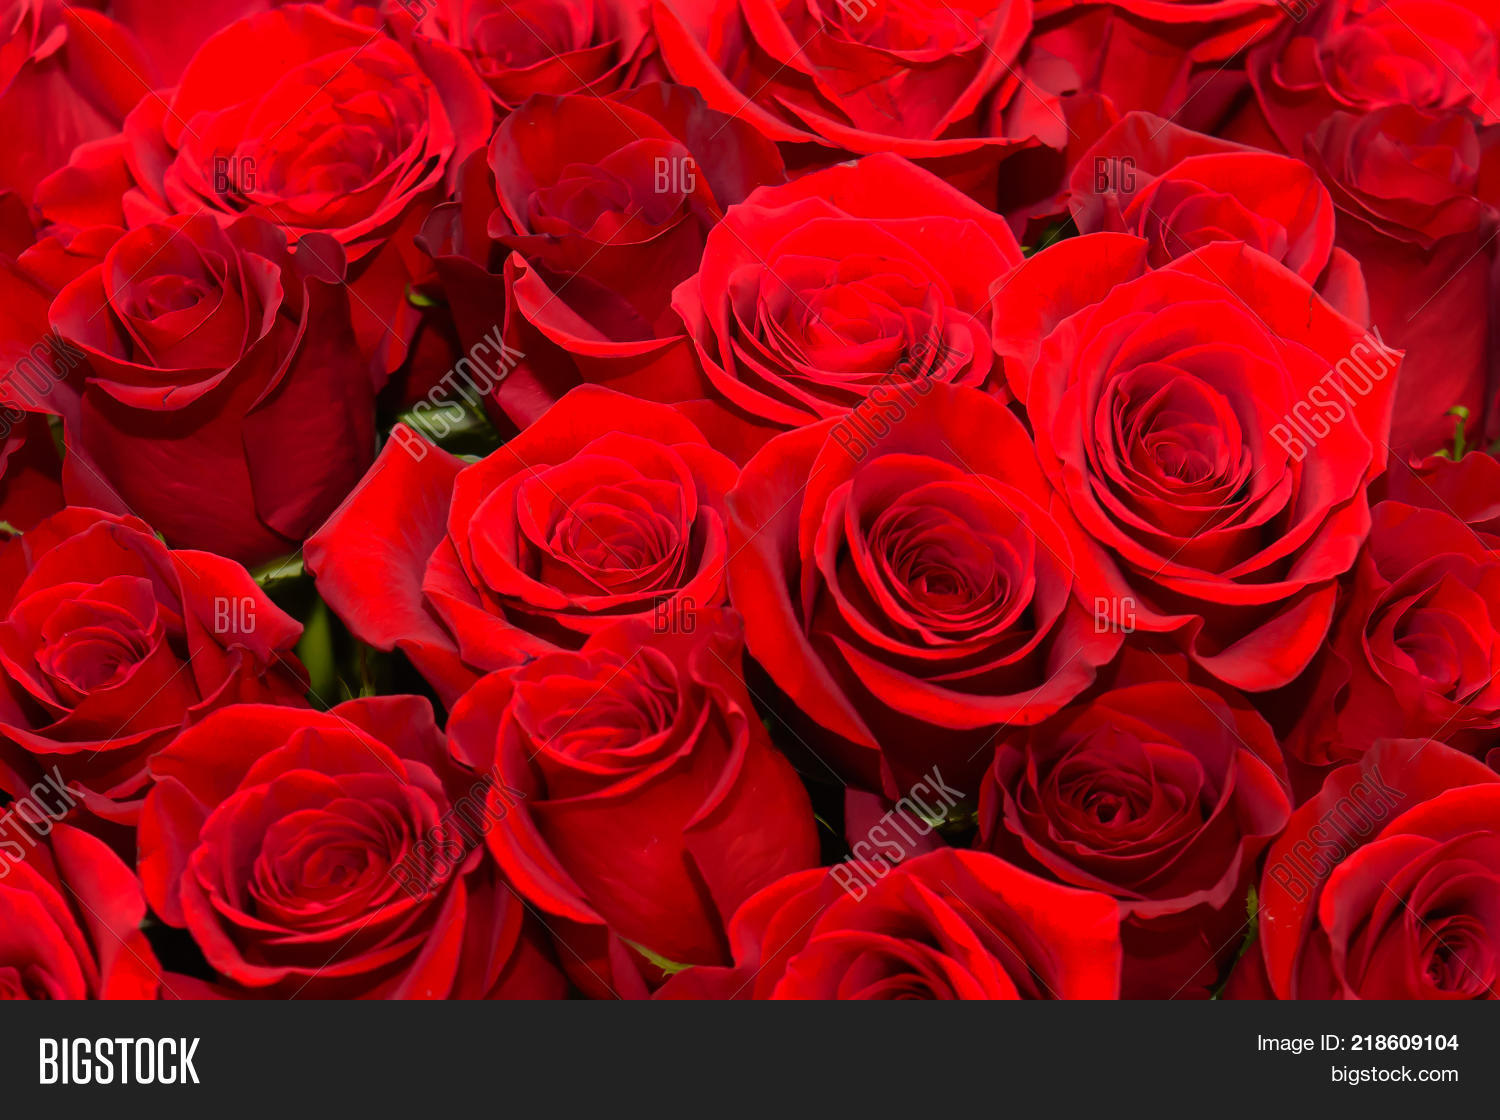 Many red roses image photo free trial bigstock many red roses scarlet luxury rose close noble holiday flowers for a gift izmirmasajfo